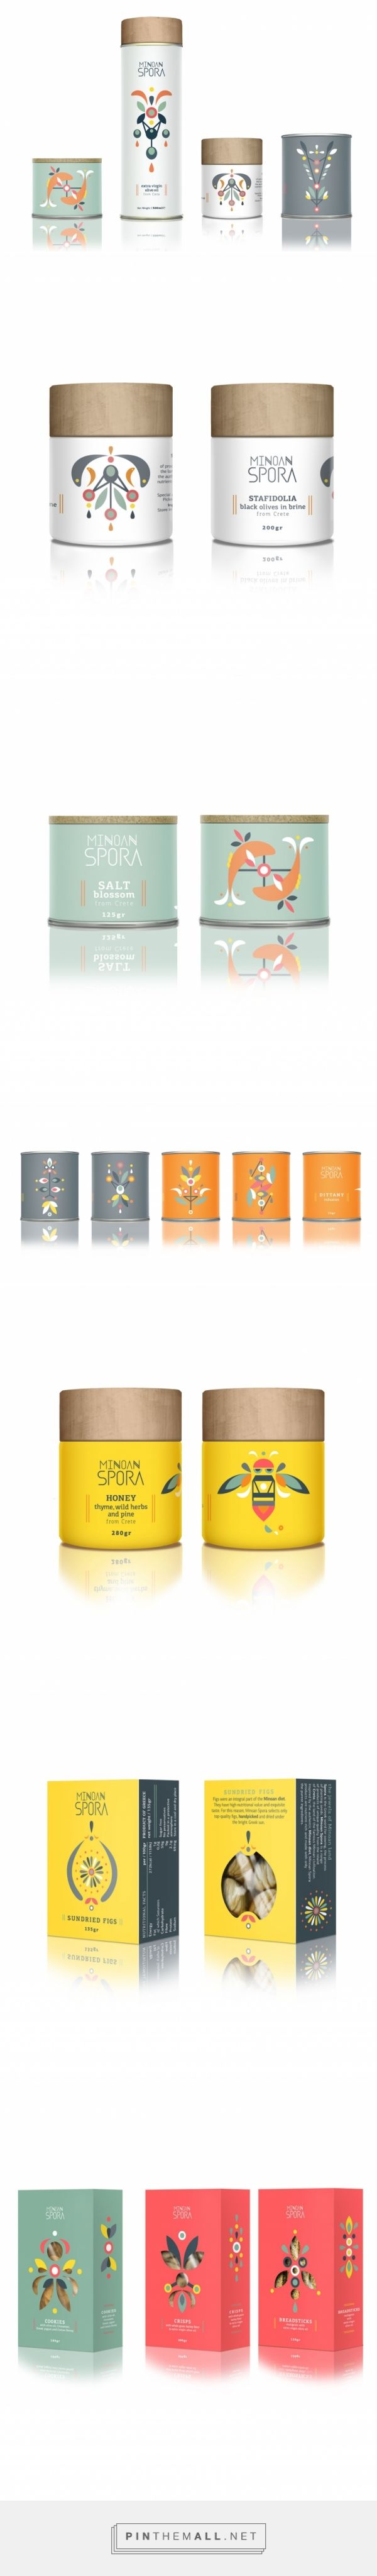 "Minoan Spora - ""Minoan Spora is a range of products from the island of Crete, including olive oil, herbs and infusions, honey, olives, rusks and cookies. / designed by lazy snail , Eleni Pavlaki"